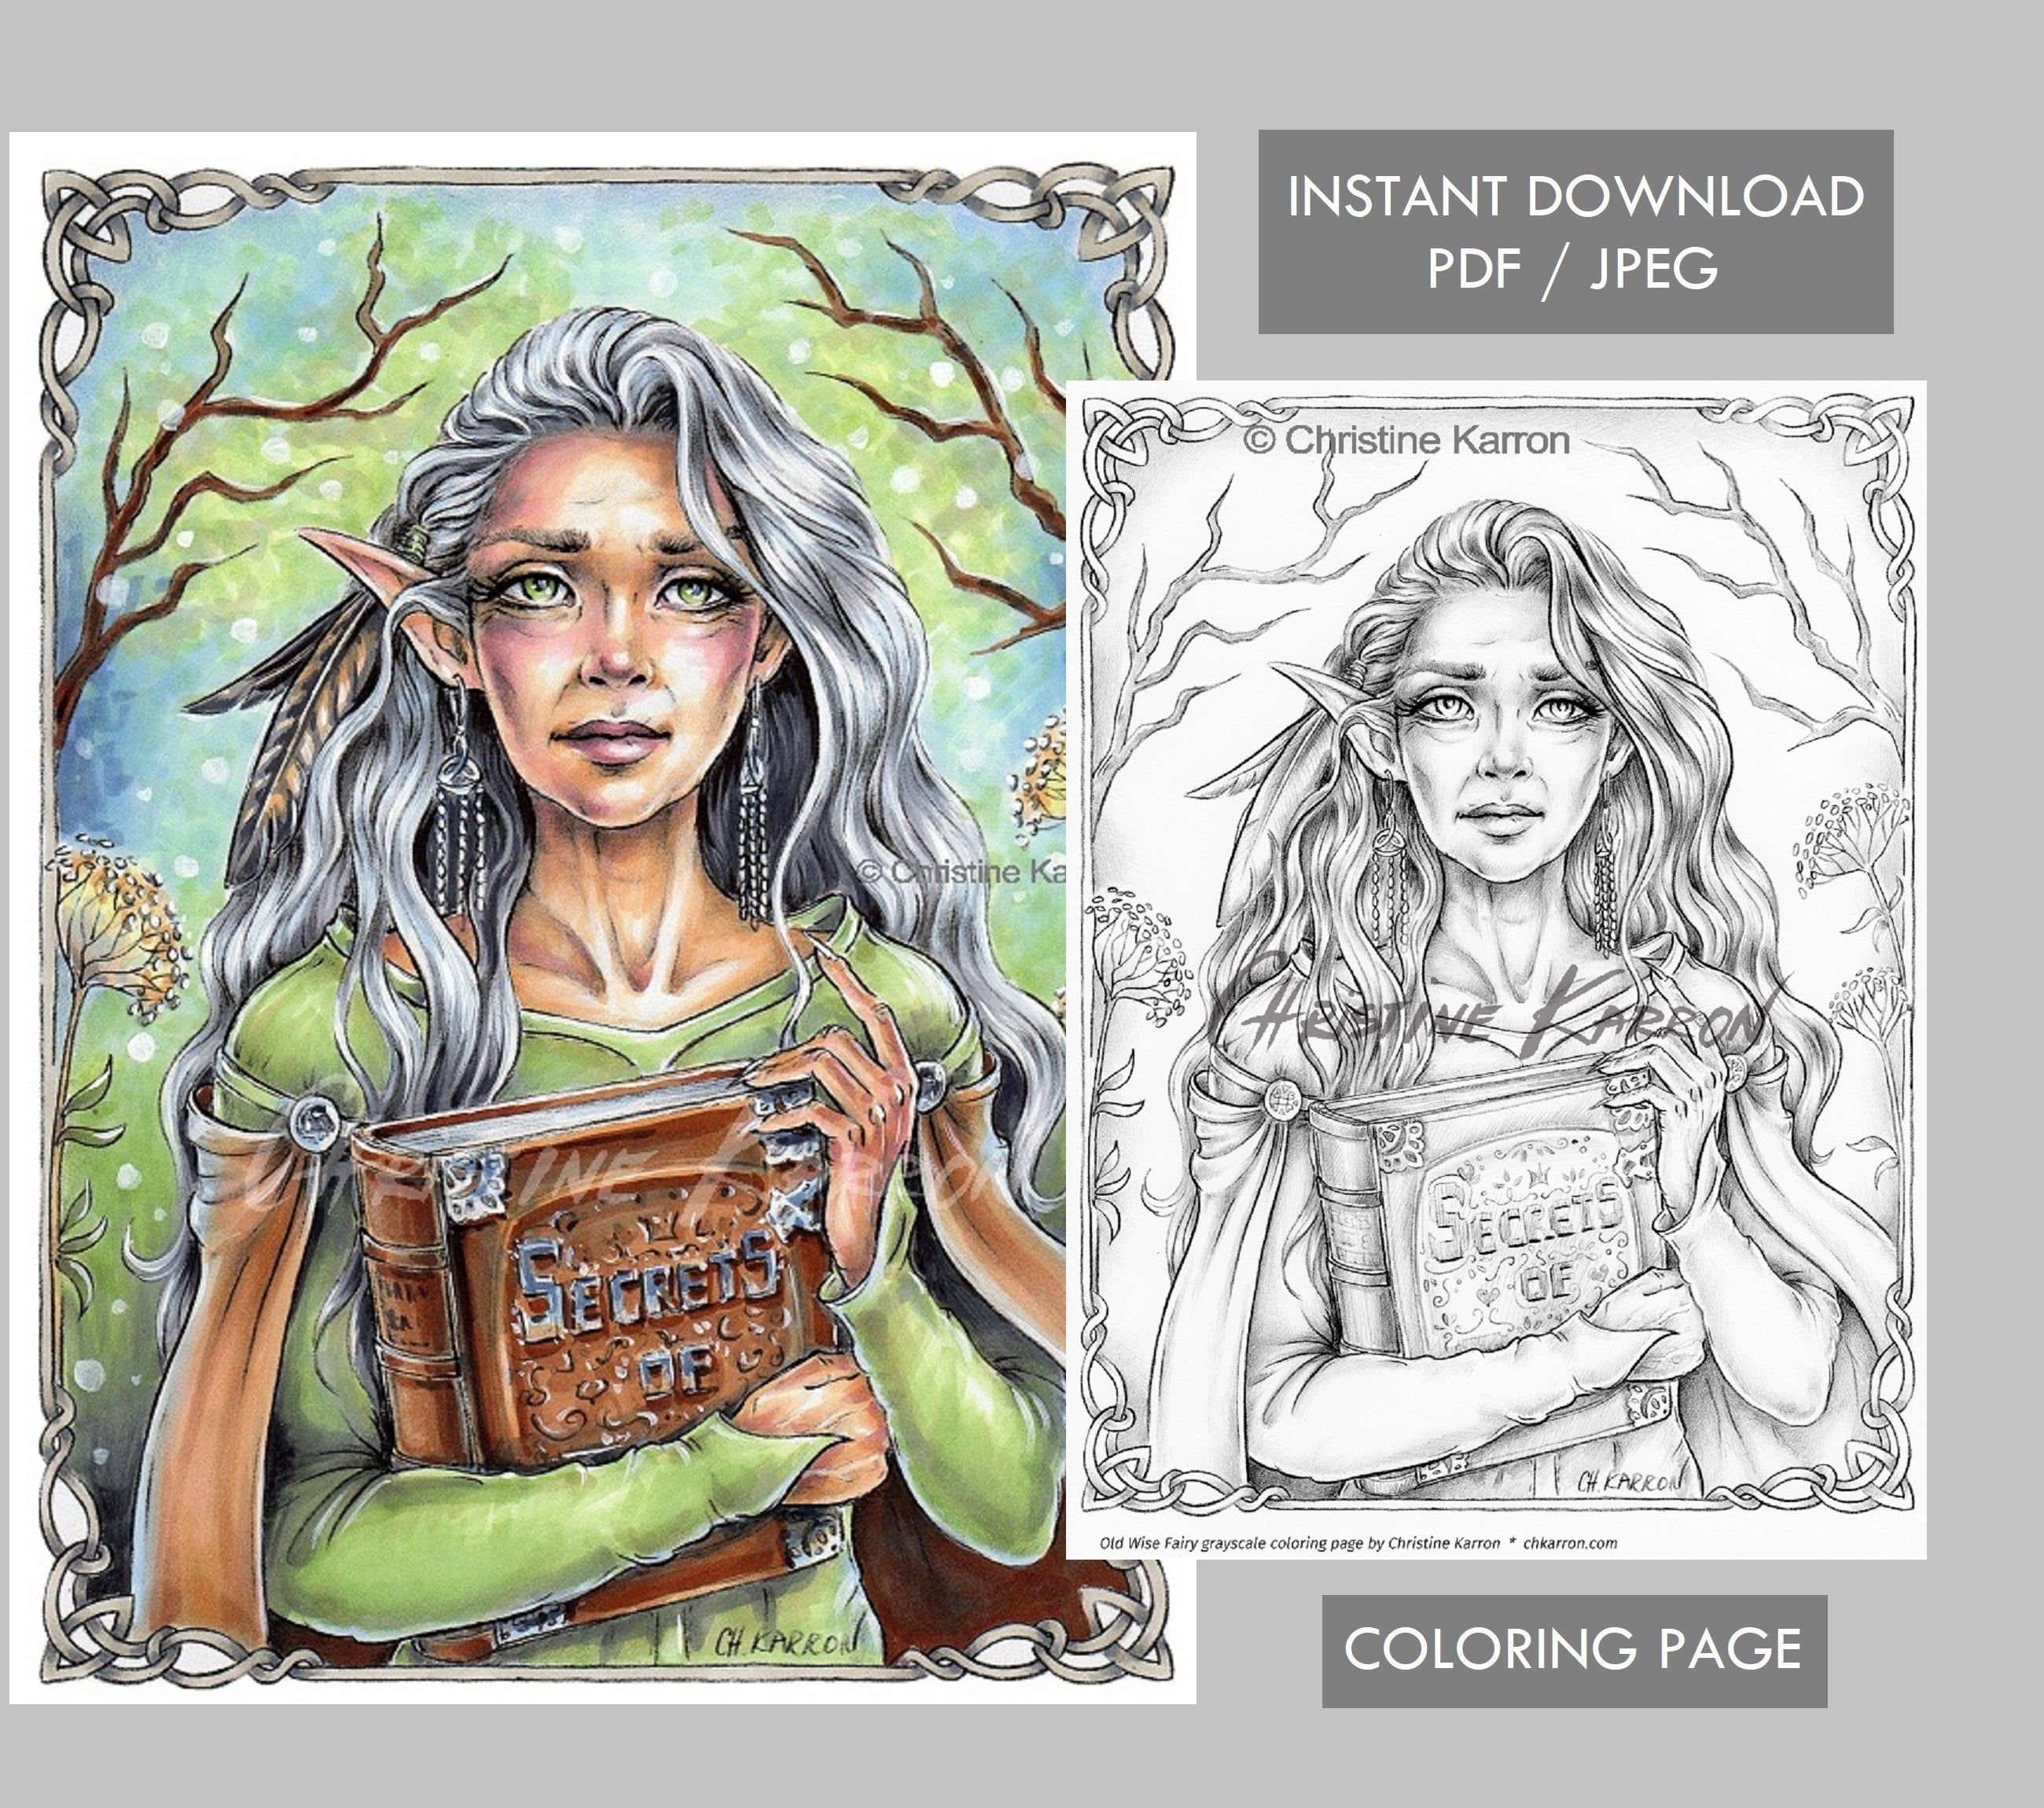 Old Wise Fairy Grayscale Coloring Page Instant Download Printable File Jpeg And Pdf Grayscale Coloring Coloring Pages Grayscale [ 2300 x 2600 Pixel ]